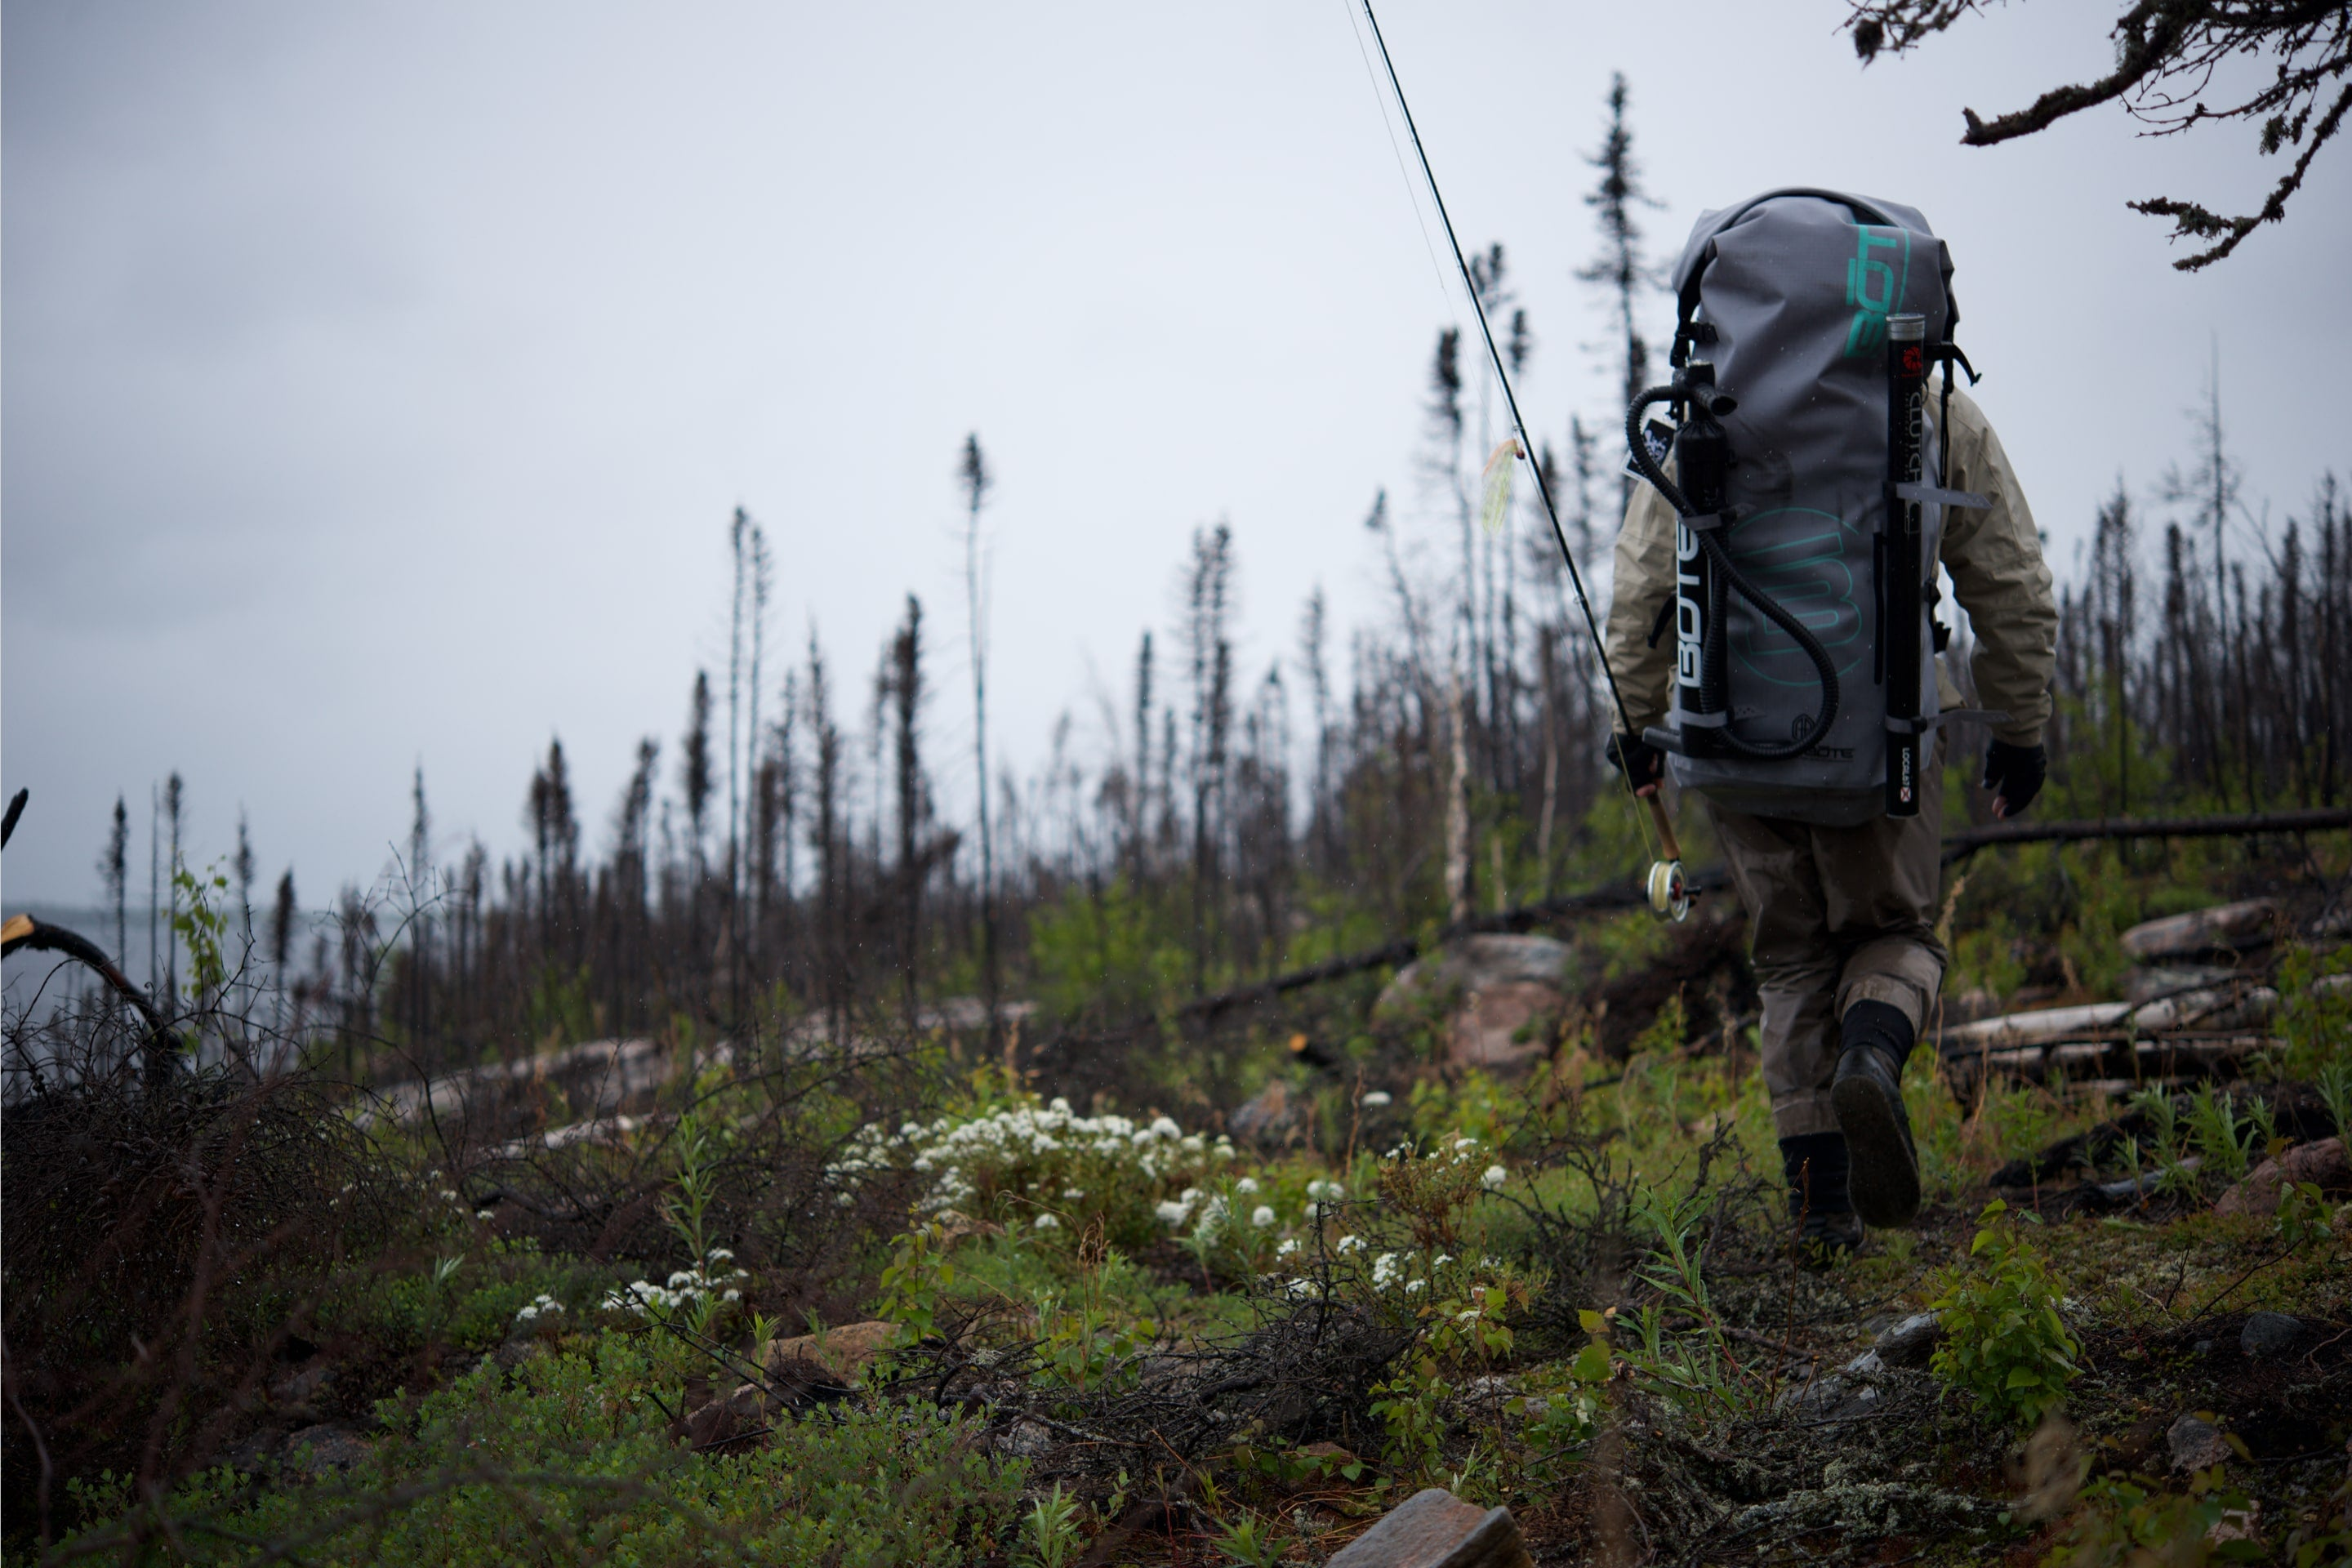 Rob McAbee treks through woods while wearing a BOTE inflatable paddle board backpack